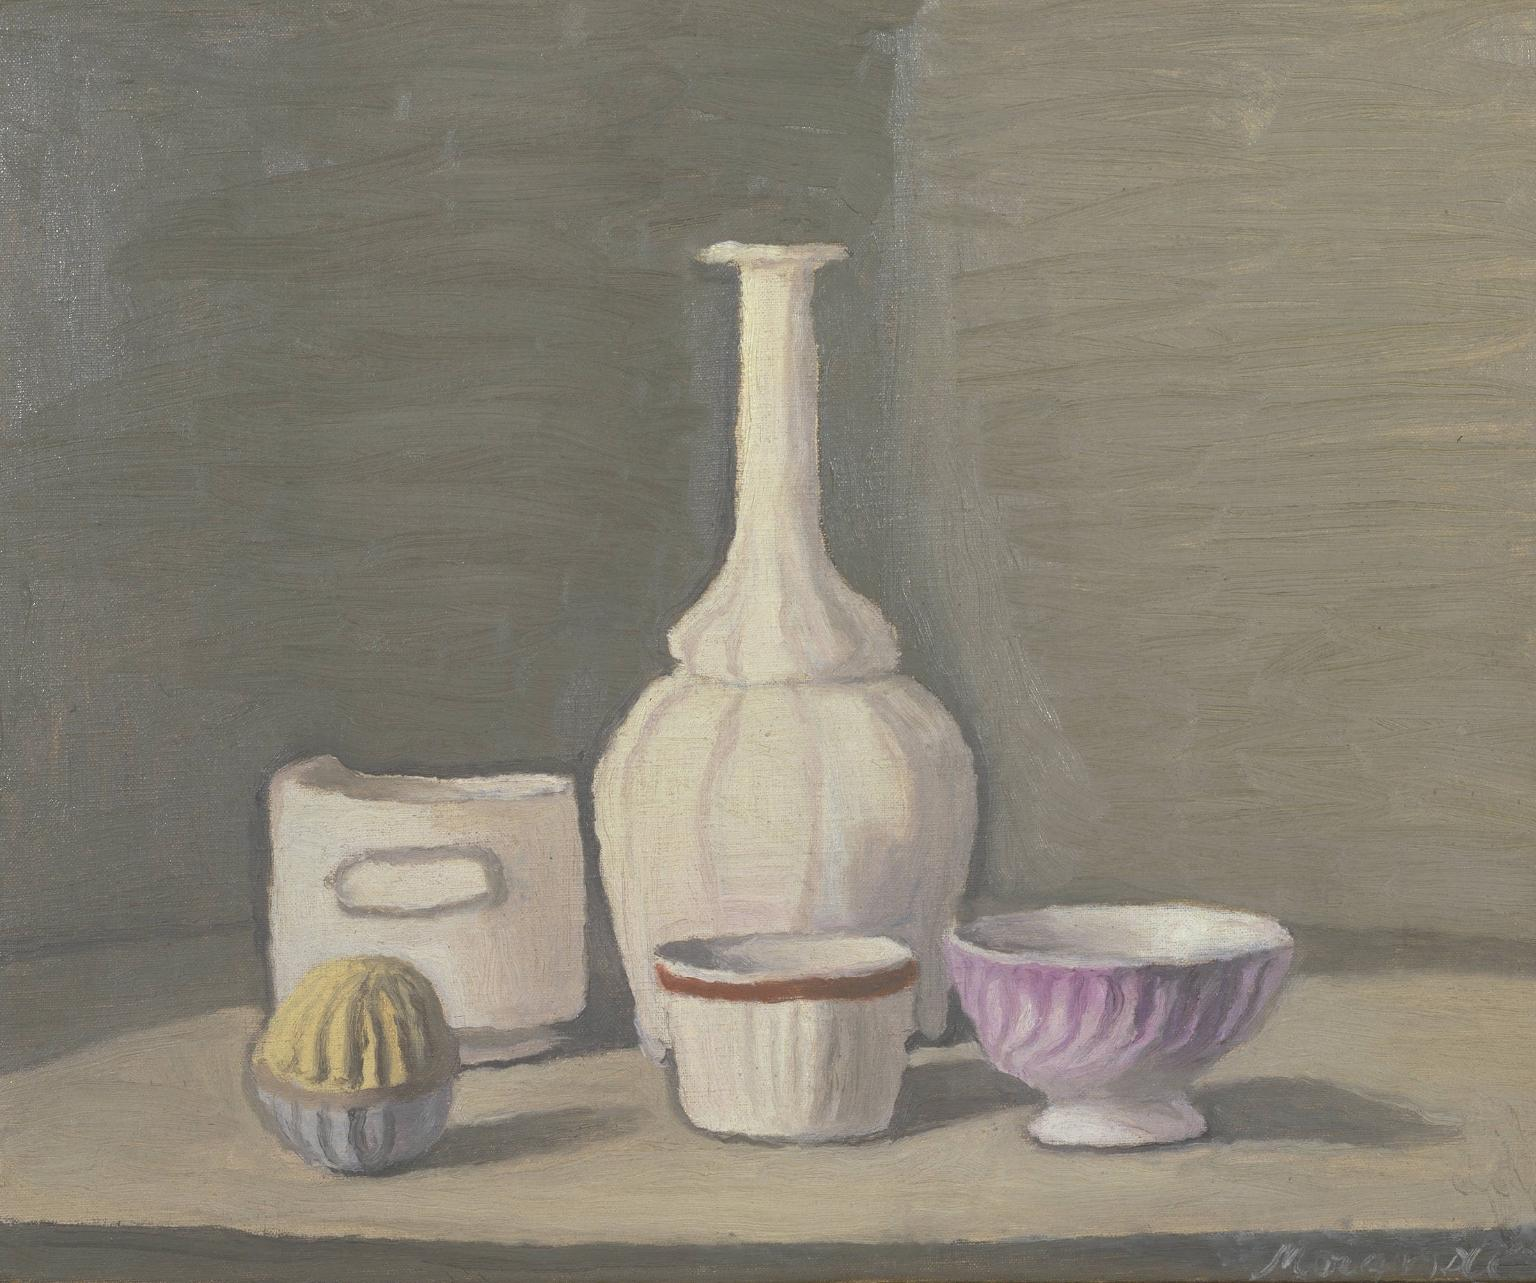 Still Life 1946 Giorgio Morandi 1890-1964 Presented by Studio d'Arte Palma, Rome 1947 http://www.tate.org.uk/art/work/N05782